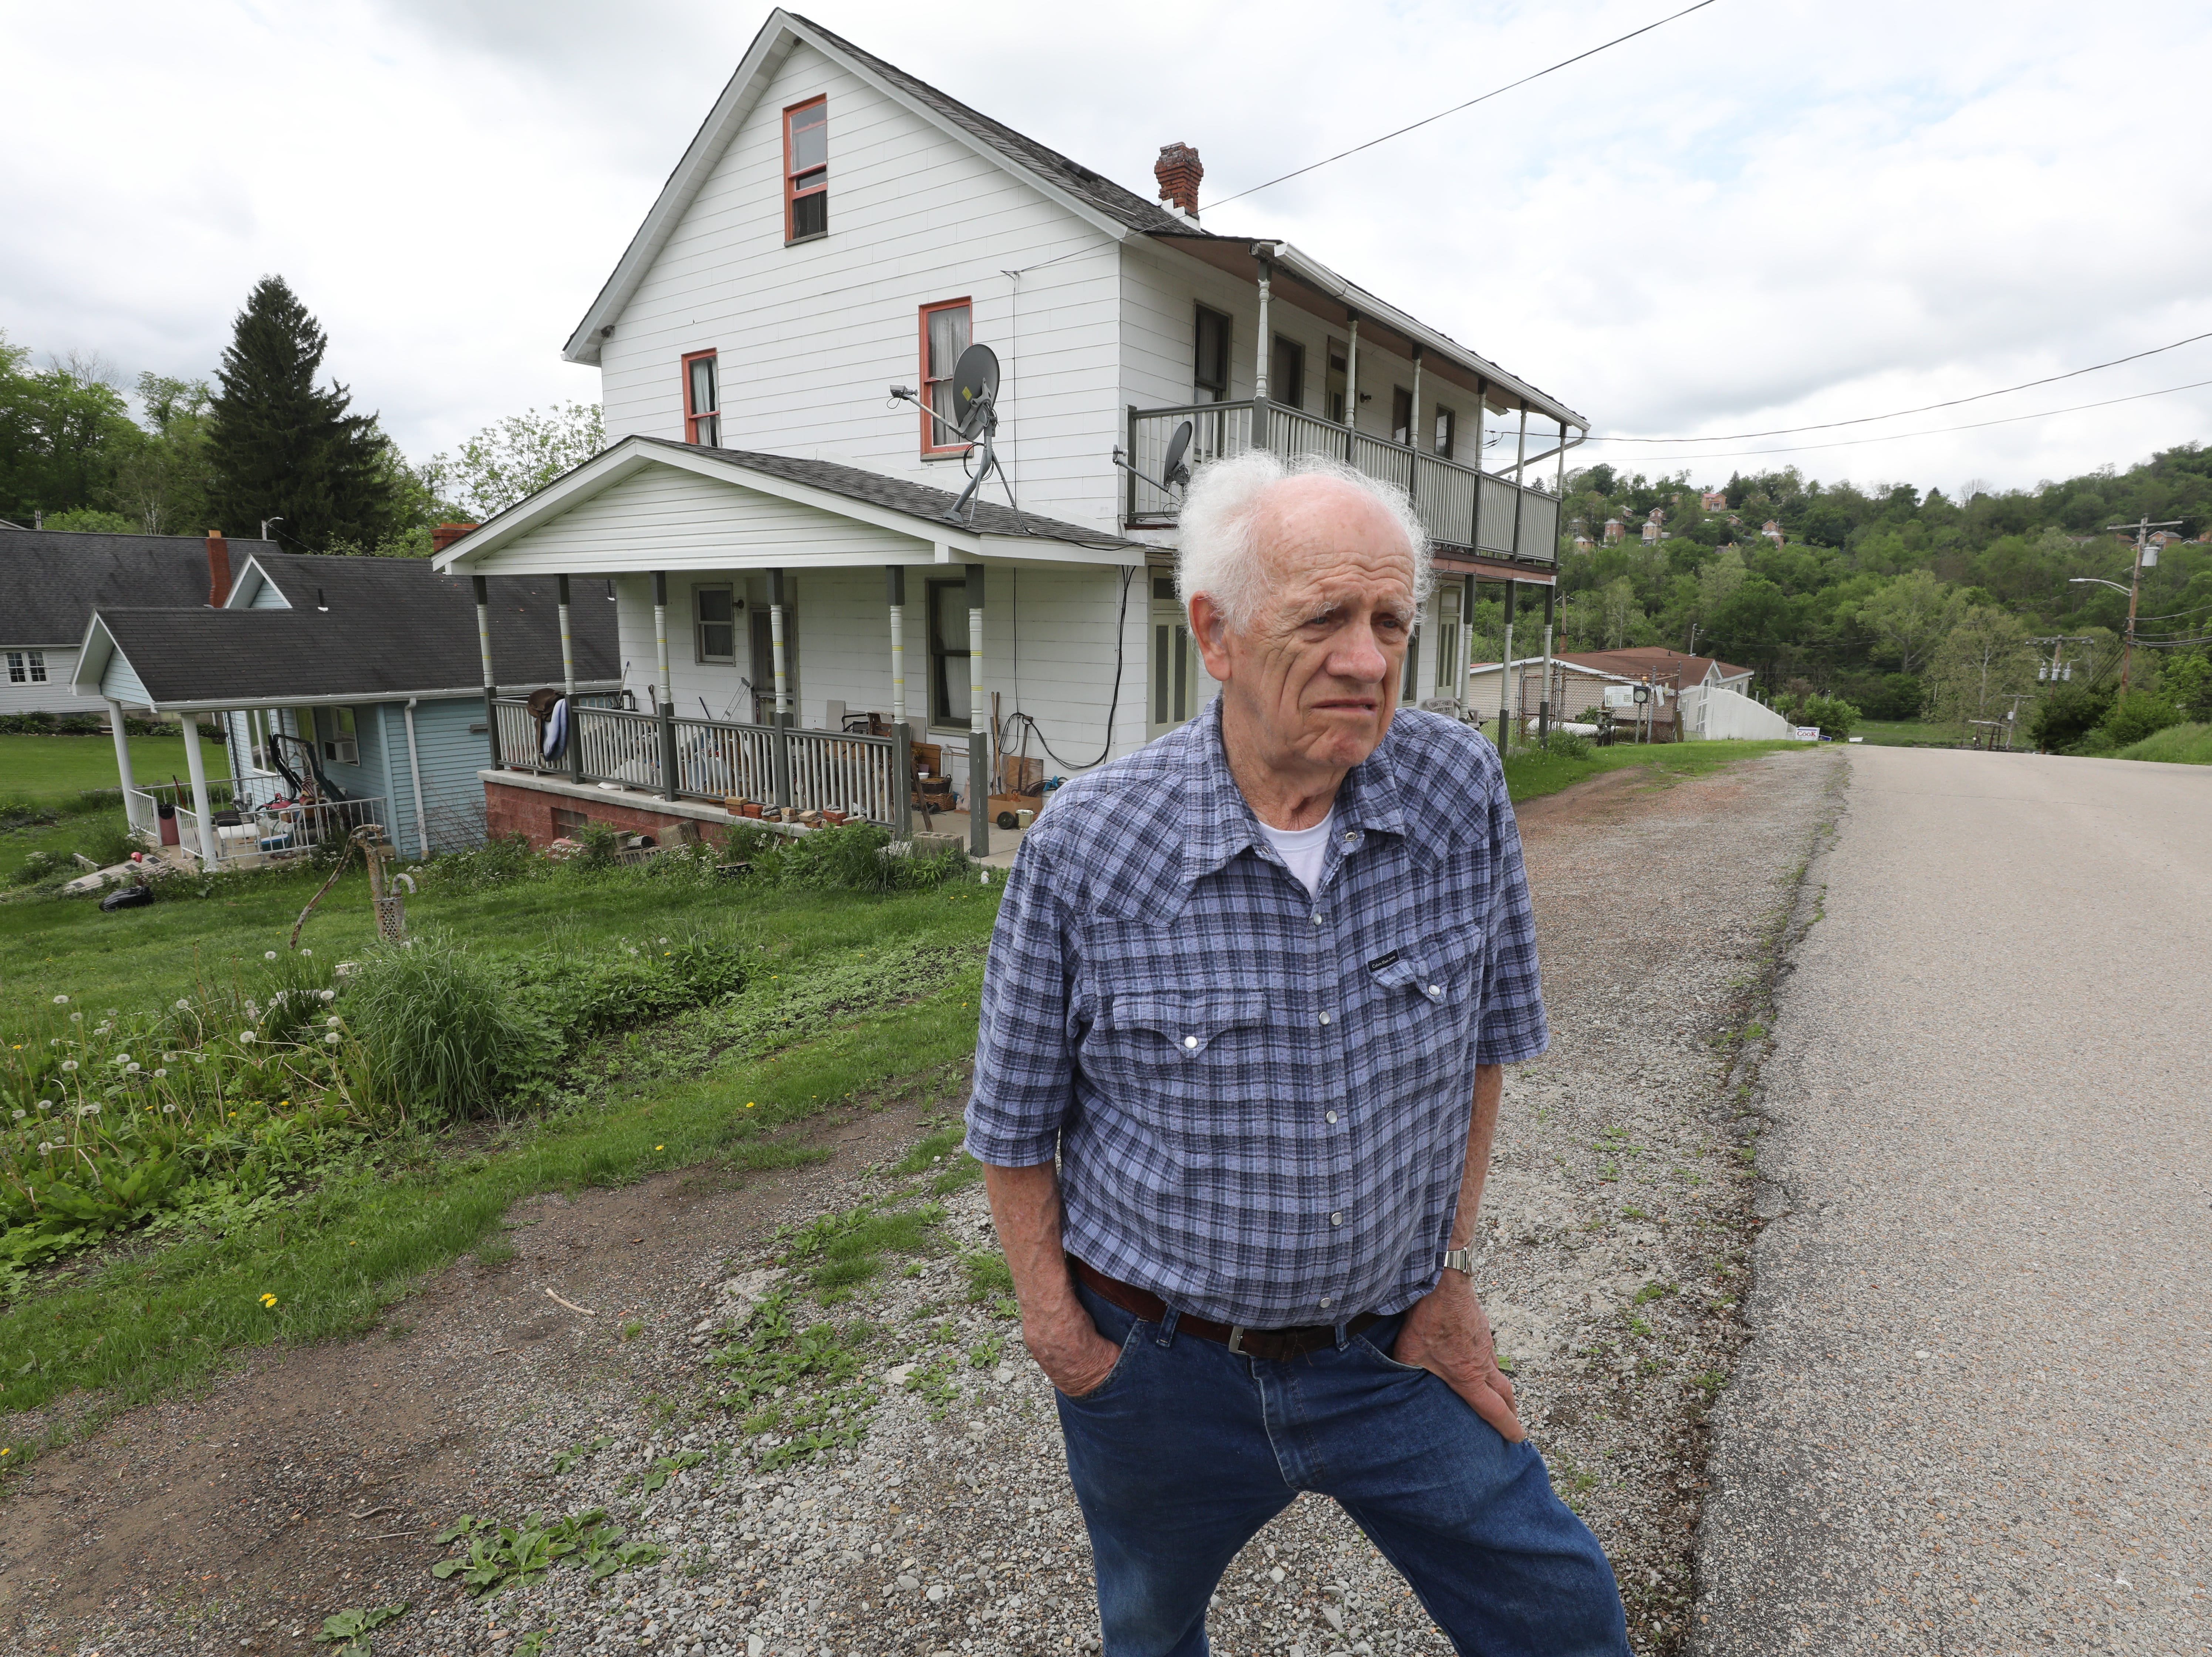 Former coal miner Rich Anseol outside a house that used to be a boarding house for coal miners.